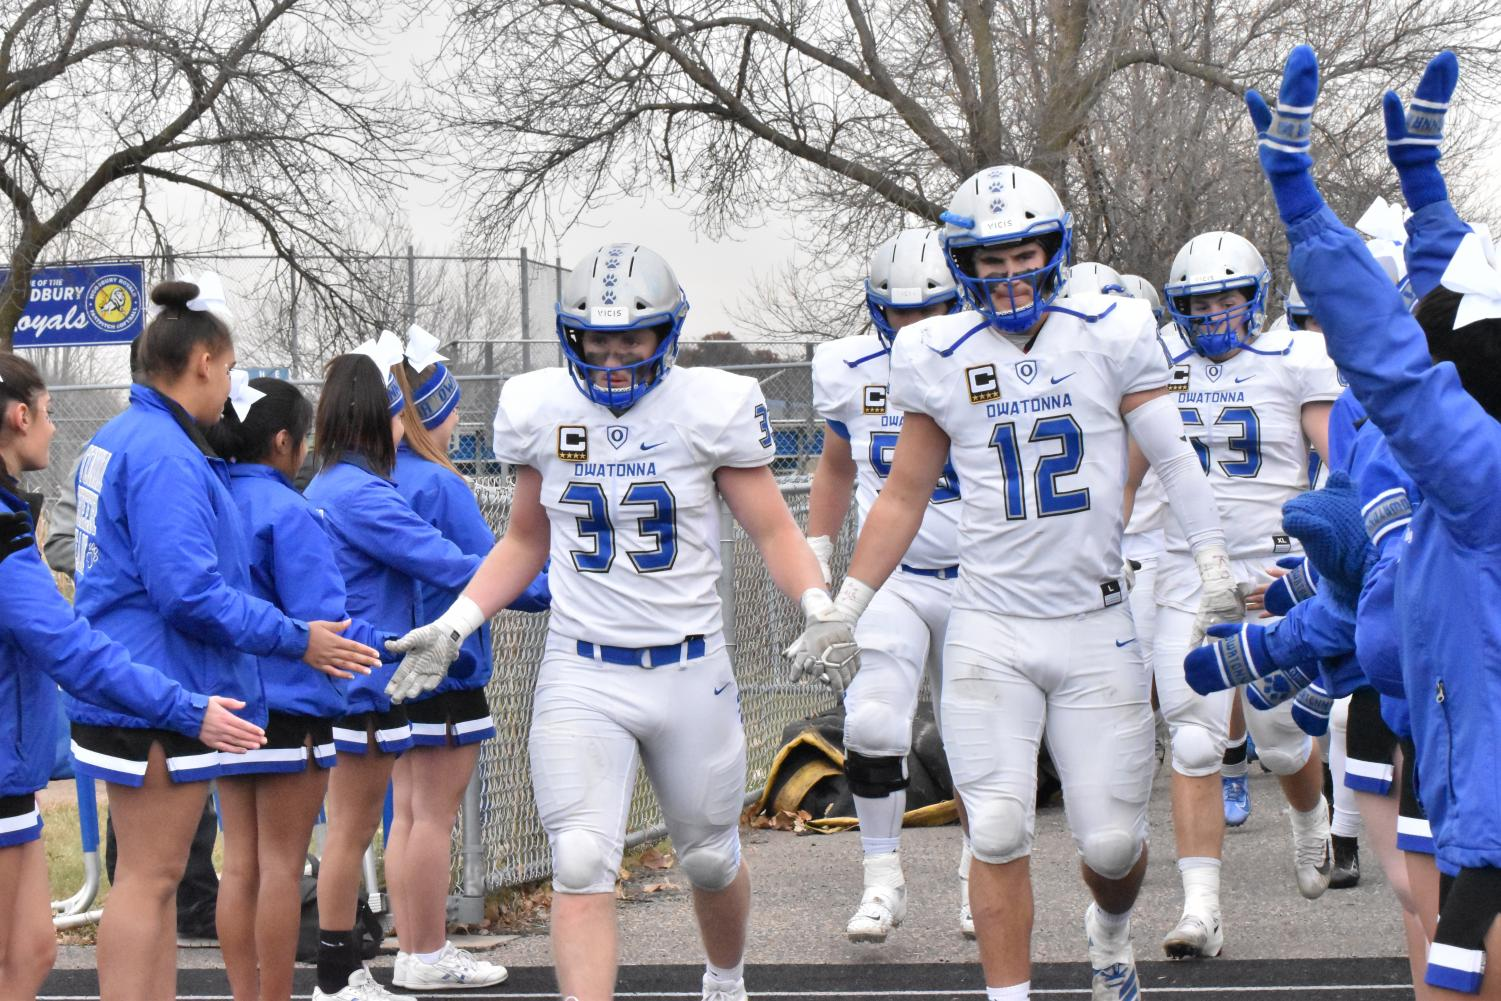 Captains Isaac Gefre, Carson Dekam, and Zach Wiese walk out at halftime of the State Quaterfinals